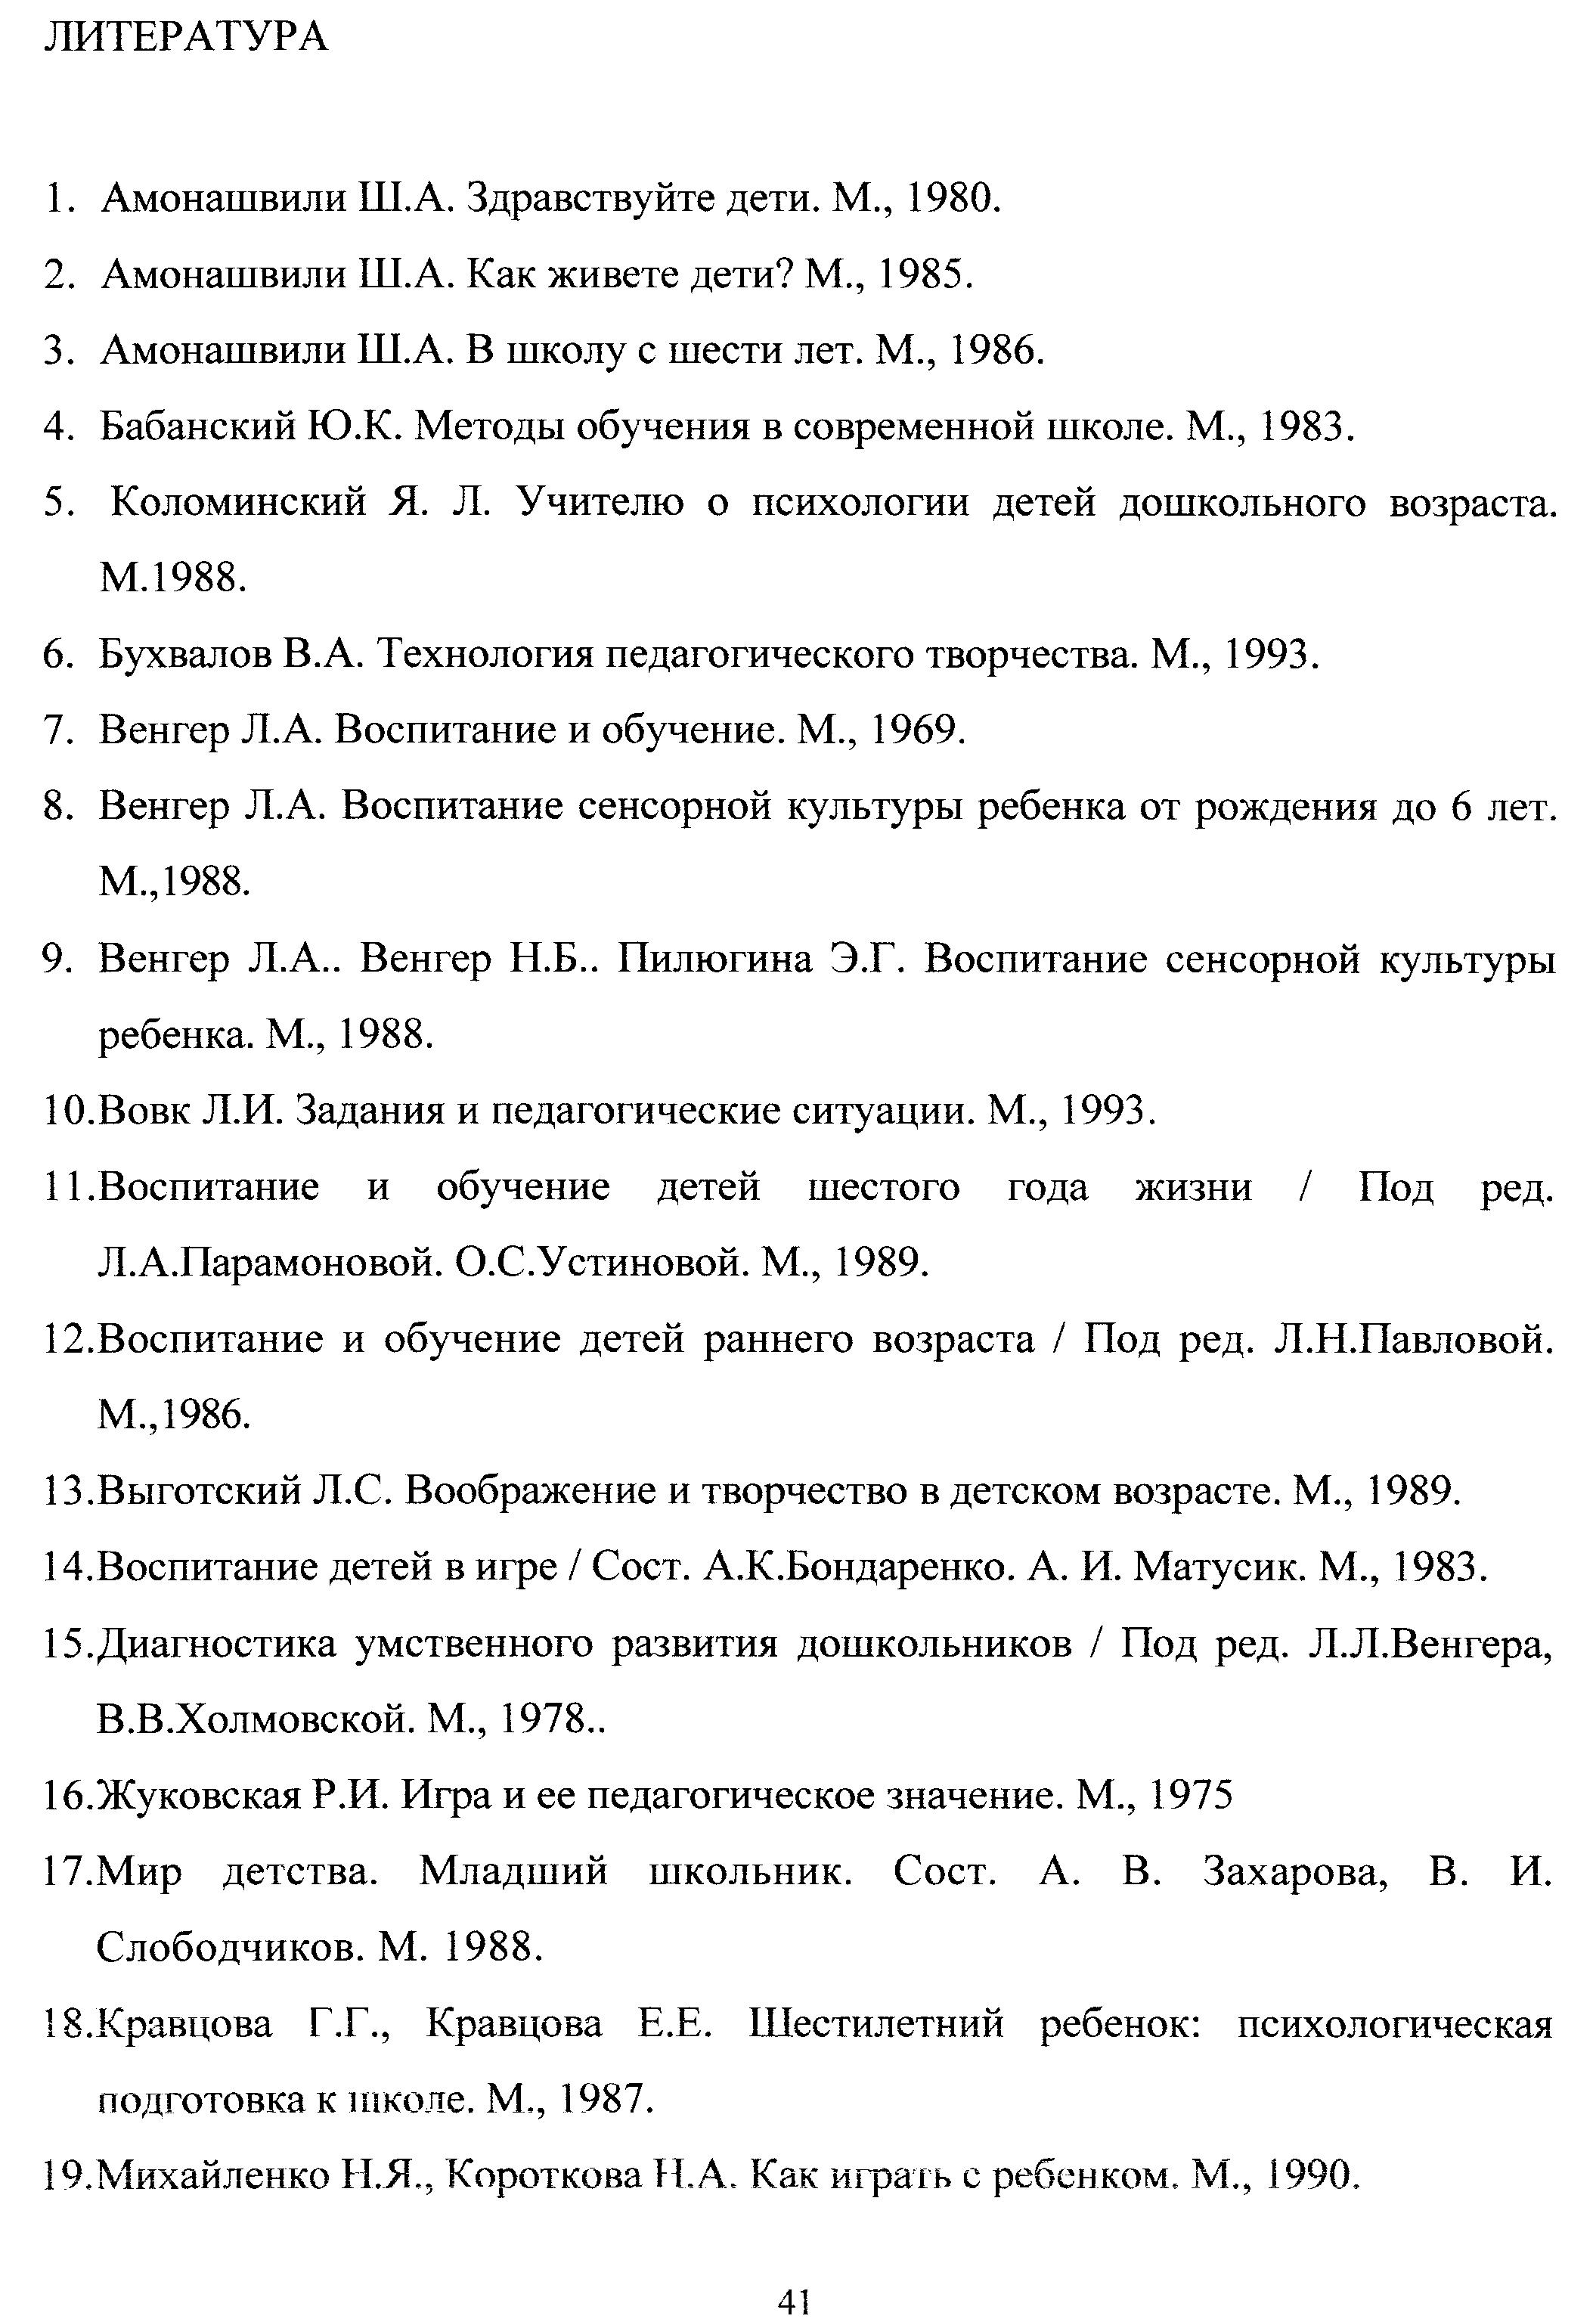 C:\Users\ЛАРИСА\Documents\Scanned Documents\Рисунок (145).jpg